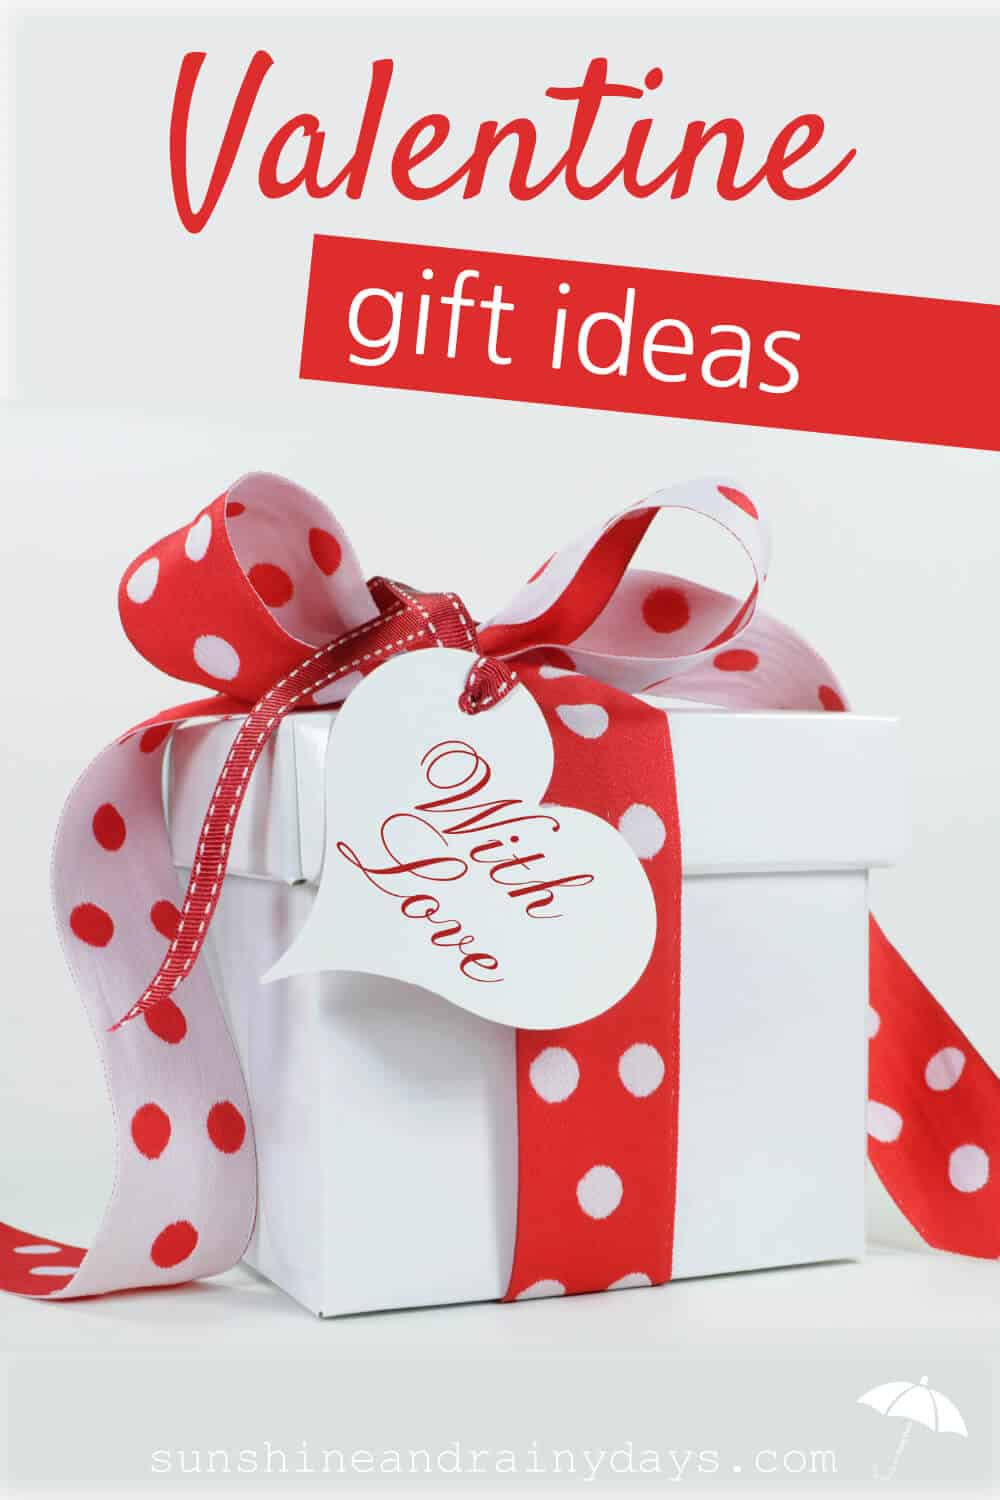 There's no need for Valentine Gift Ideas to be hard or complicated. After all, Valentine's Day is a fun, stress free day to spend time with those you love. A simple gift, a homemade card, and TIME will be the perfect mix!